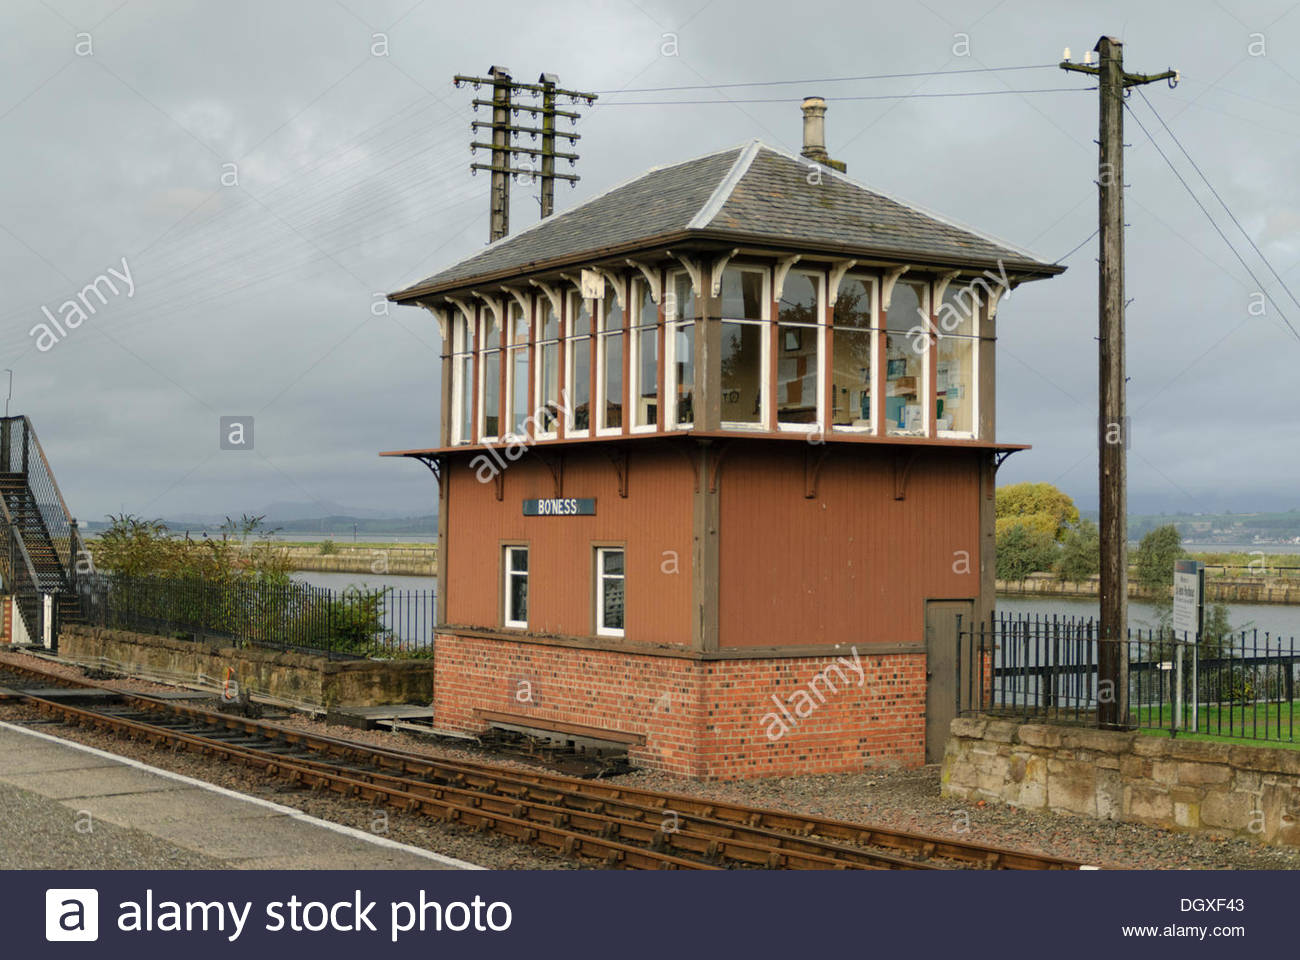 Bo'ness,UK. Sunday, October 27, 2013. Signal Box at Bo'ness and Kinneil Railway station. Hundreds of people turned out for the 'Steam 'n' Scream' Halloween weekend organised by the Scottish Railway Preservation Society at Bo'ness and Kinneil Railway Credit:  Roger Gaisford/Alamy Live News - Stock Image